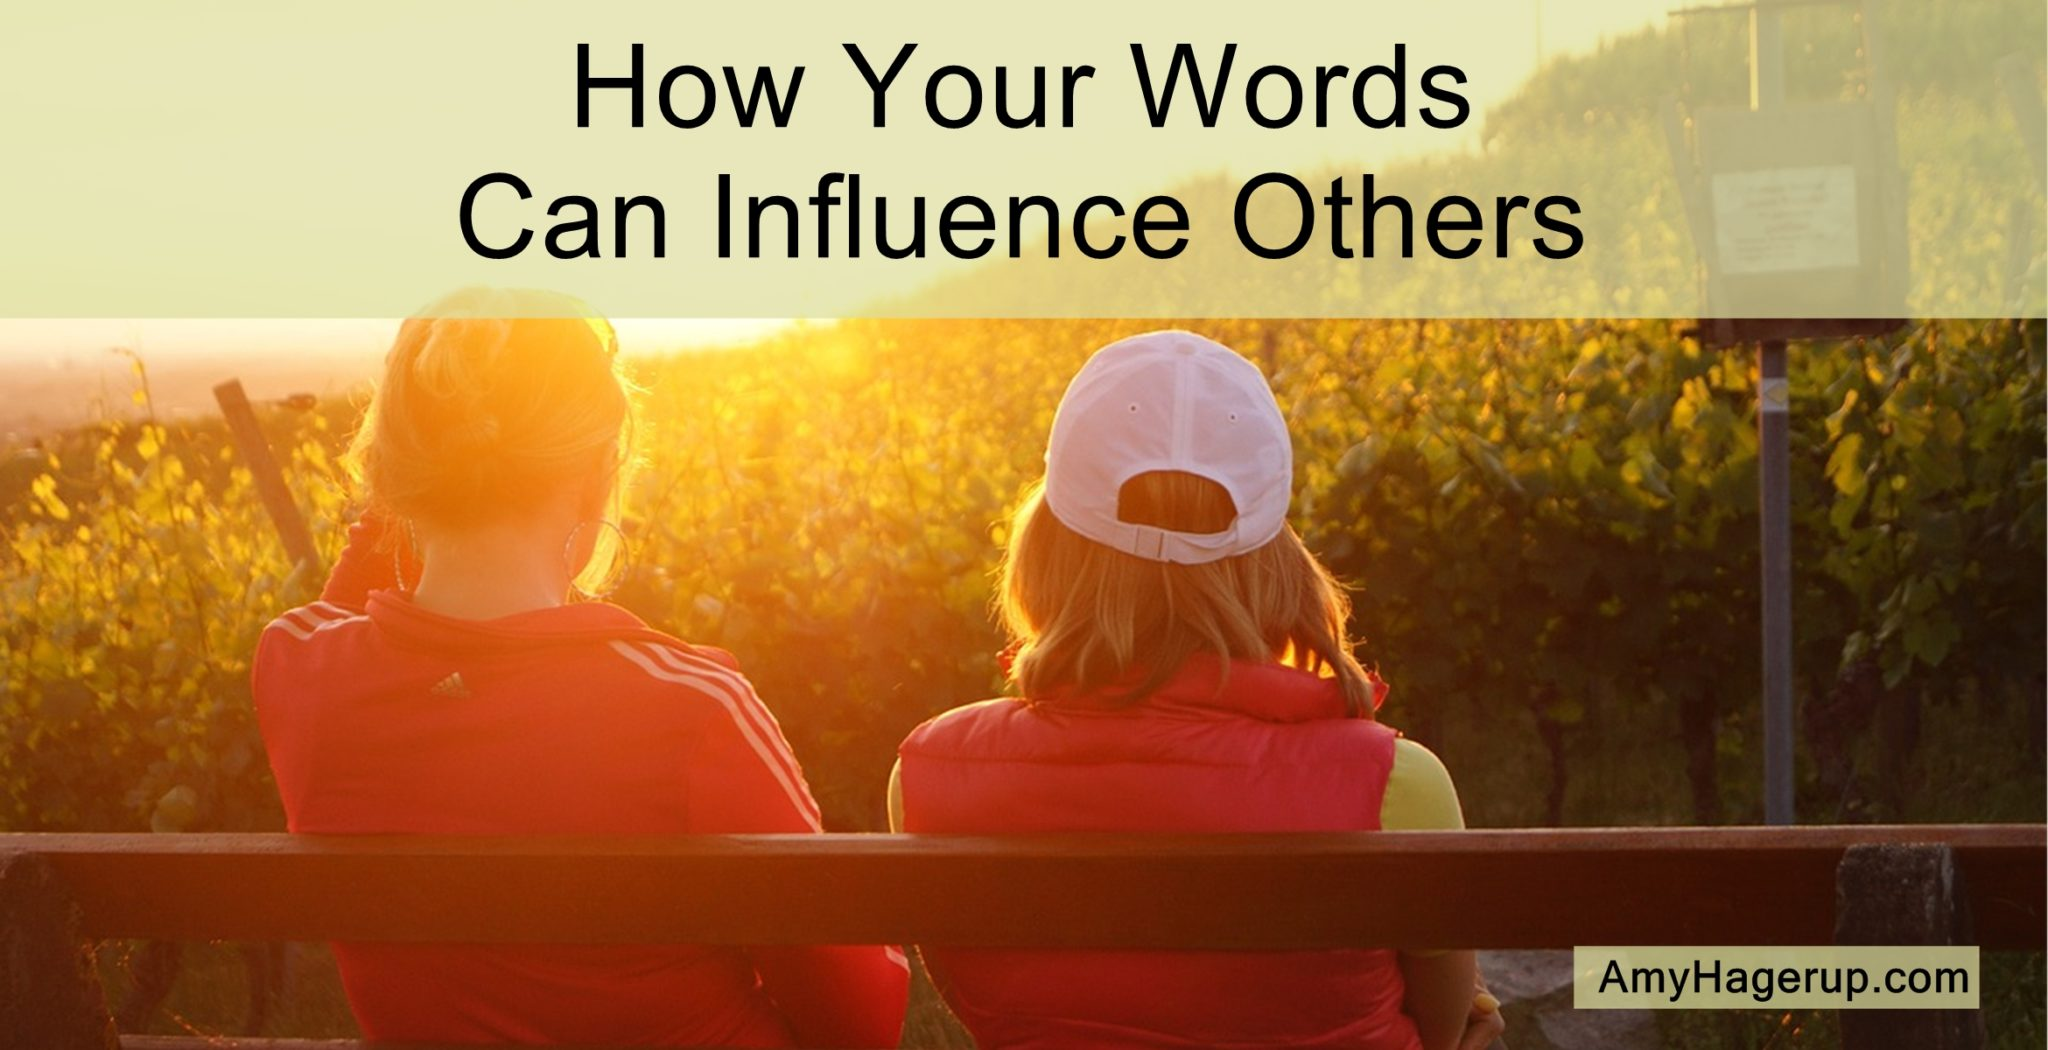 Our words - both what we say and what we write - influence others every day.